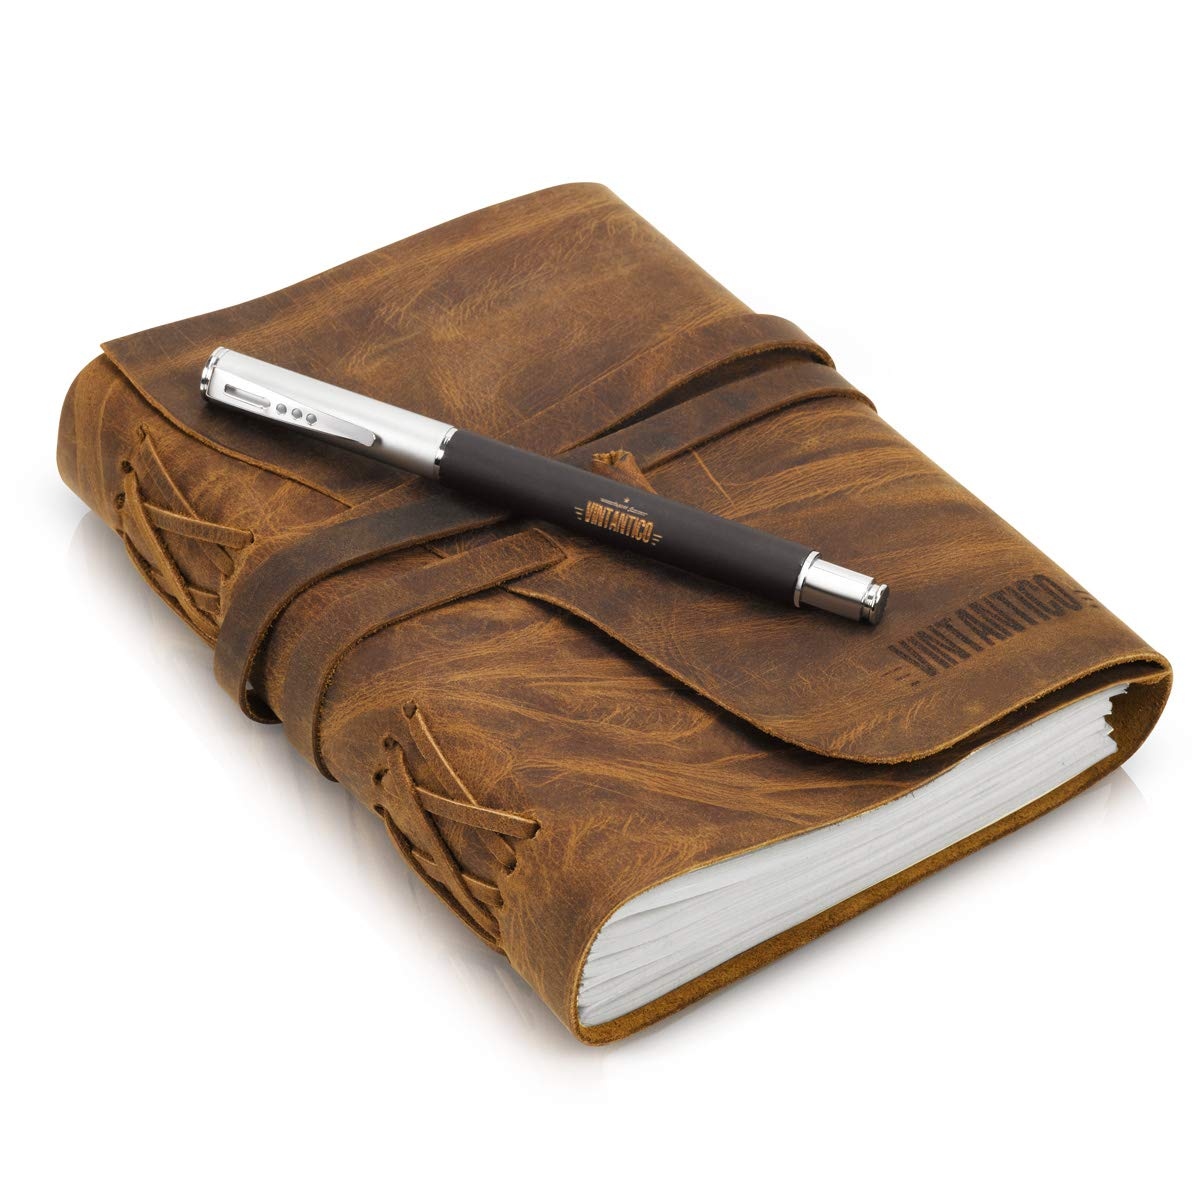 Vintantico Genuine Leather Journal with Writing Pen (Brown) Vintage, Bound, Handmade Cover Recycled Unlined Paper | Men's & Women's Personal Notepad | Incl. Bookmark, Gift Box